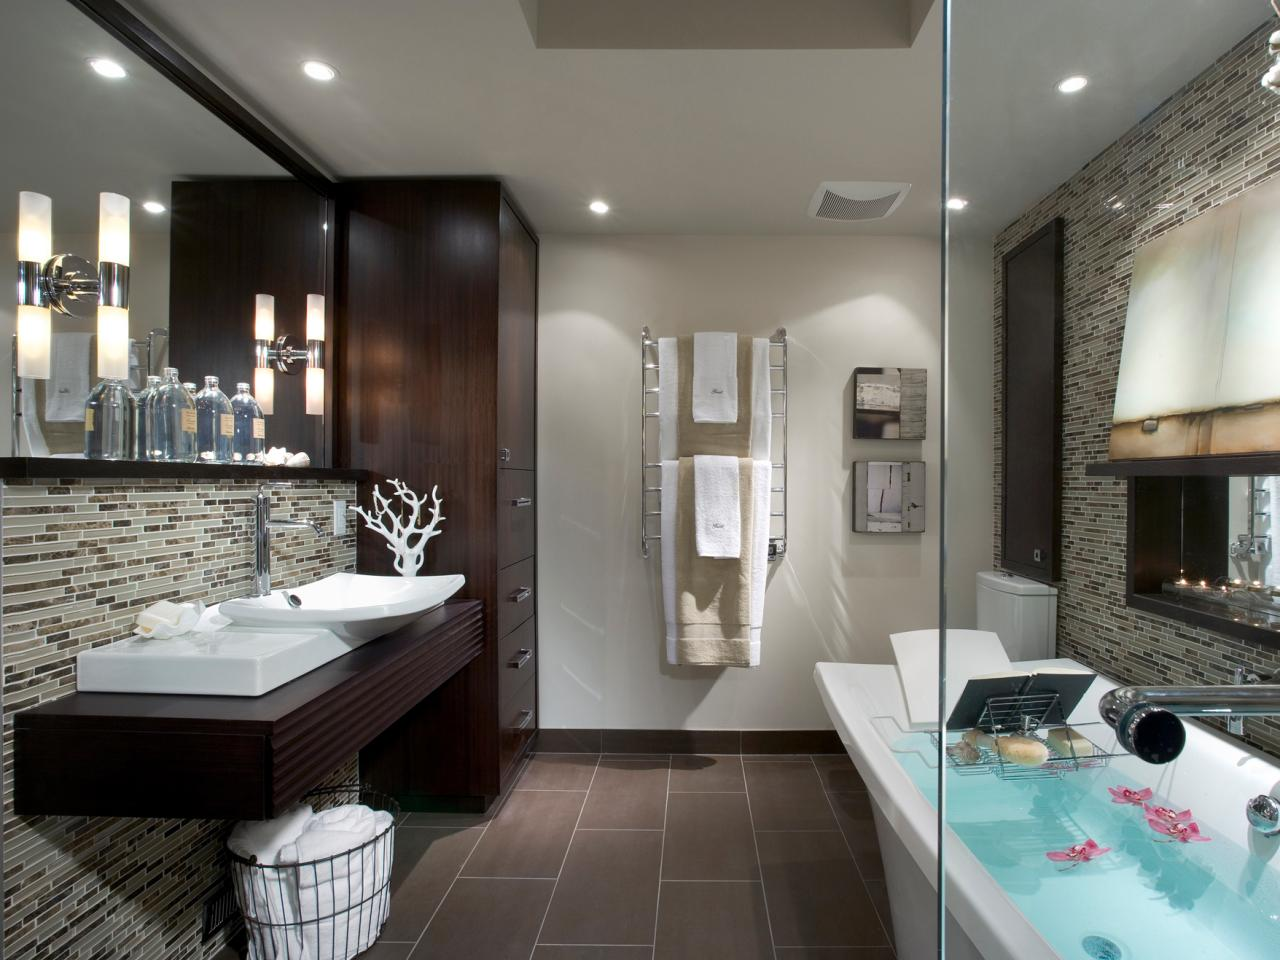 10 stylish bathroom storage solutions bathroom ideas for Restroom design ideas